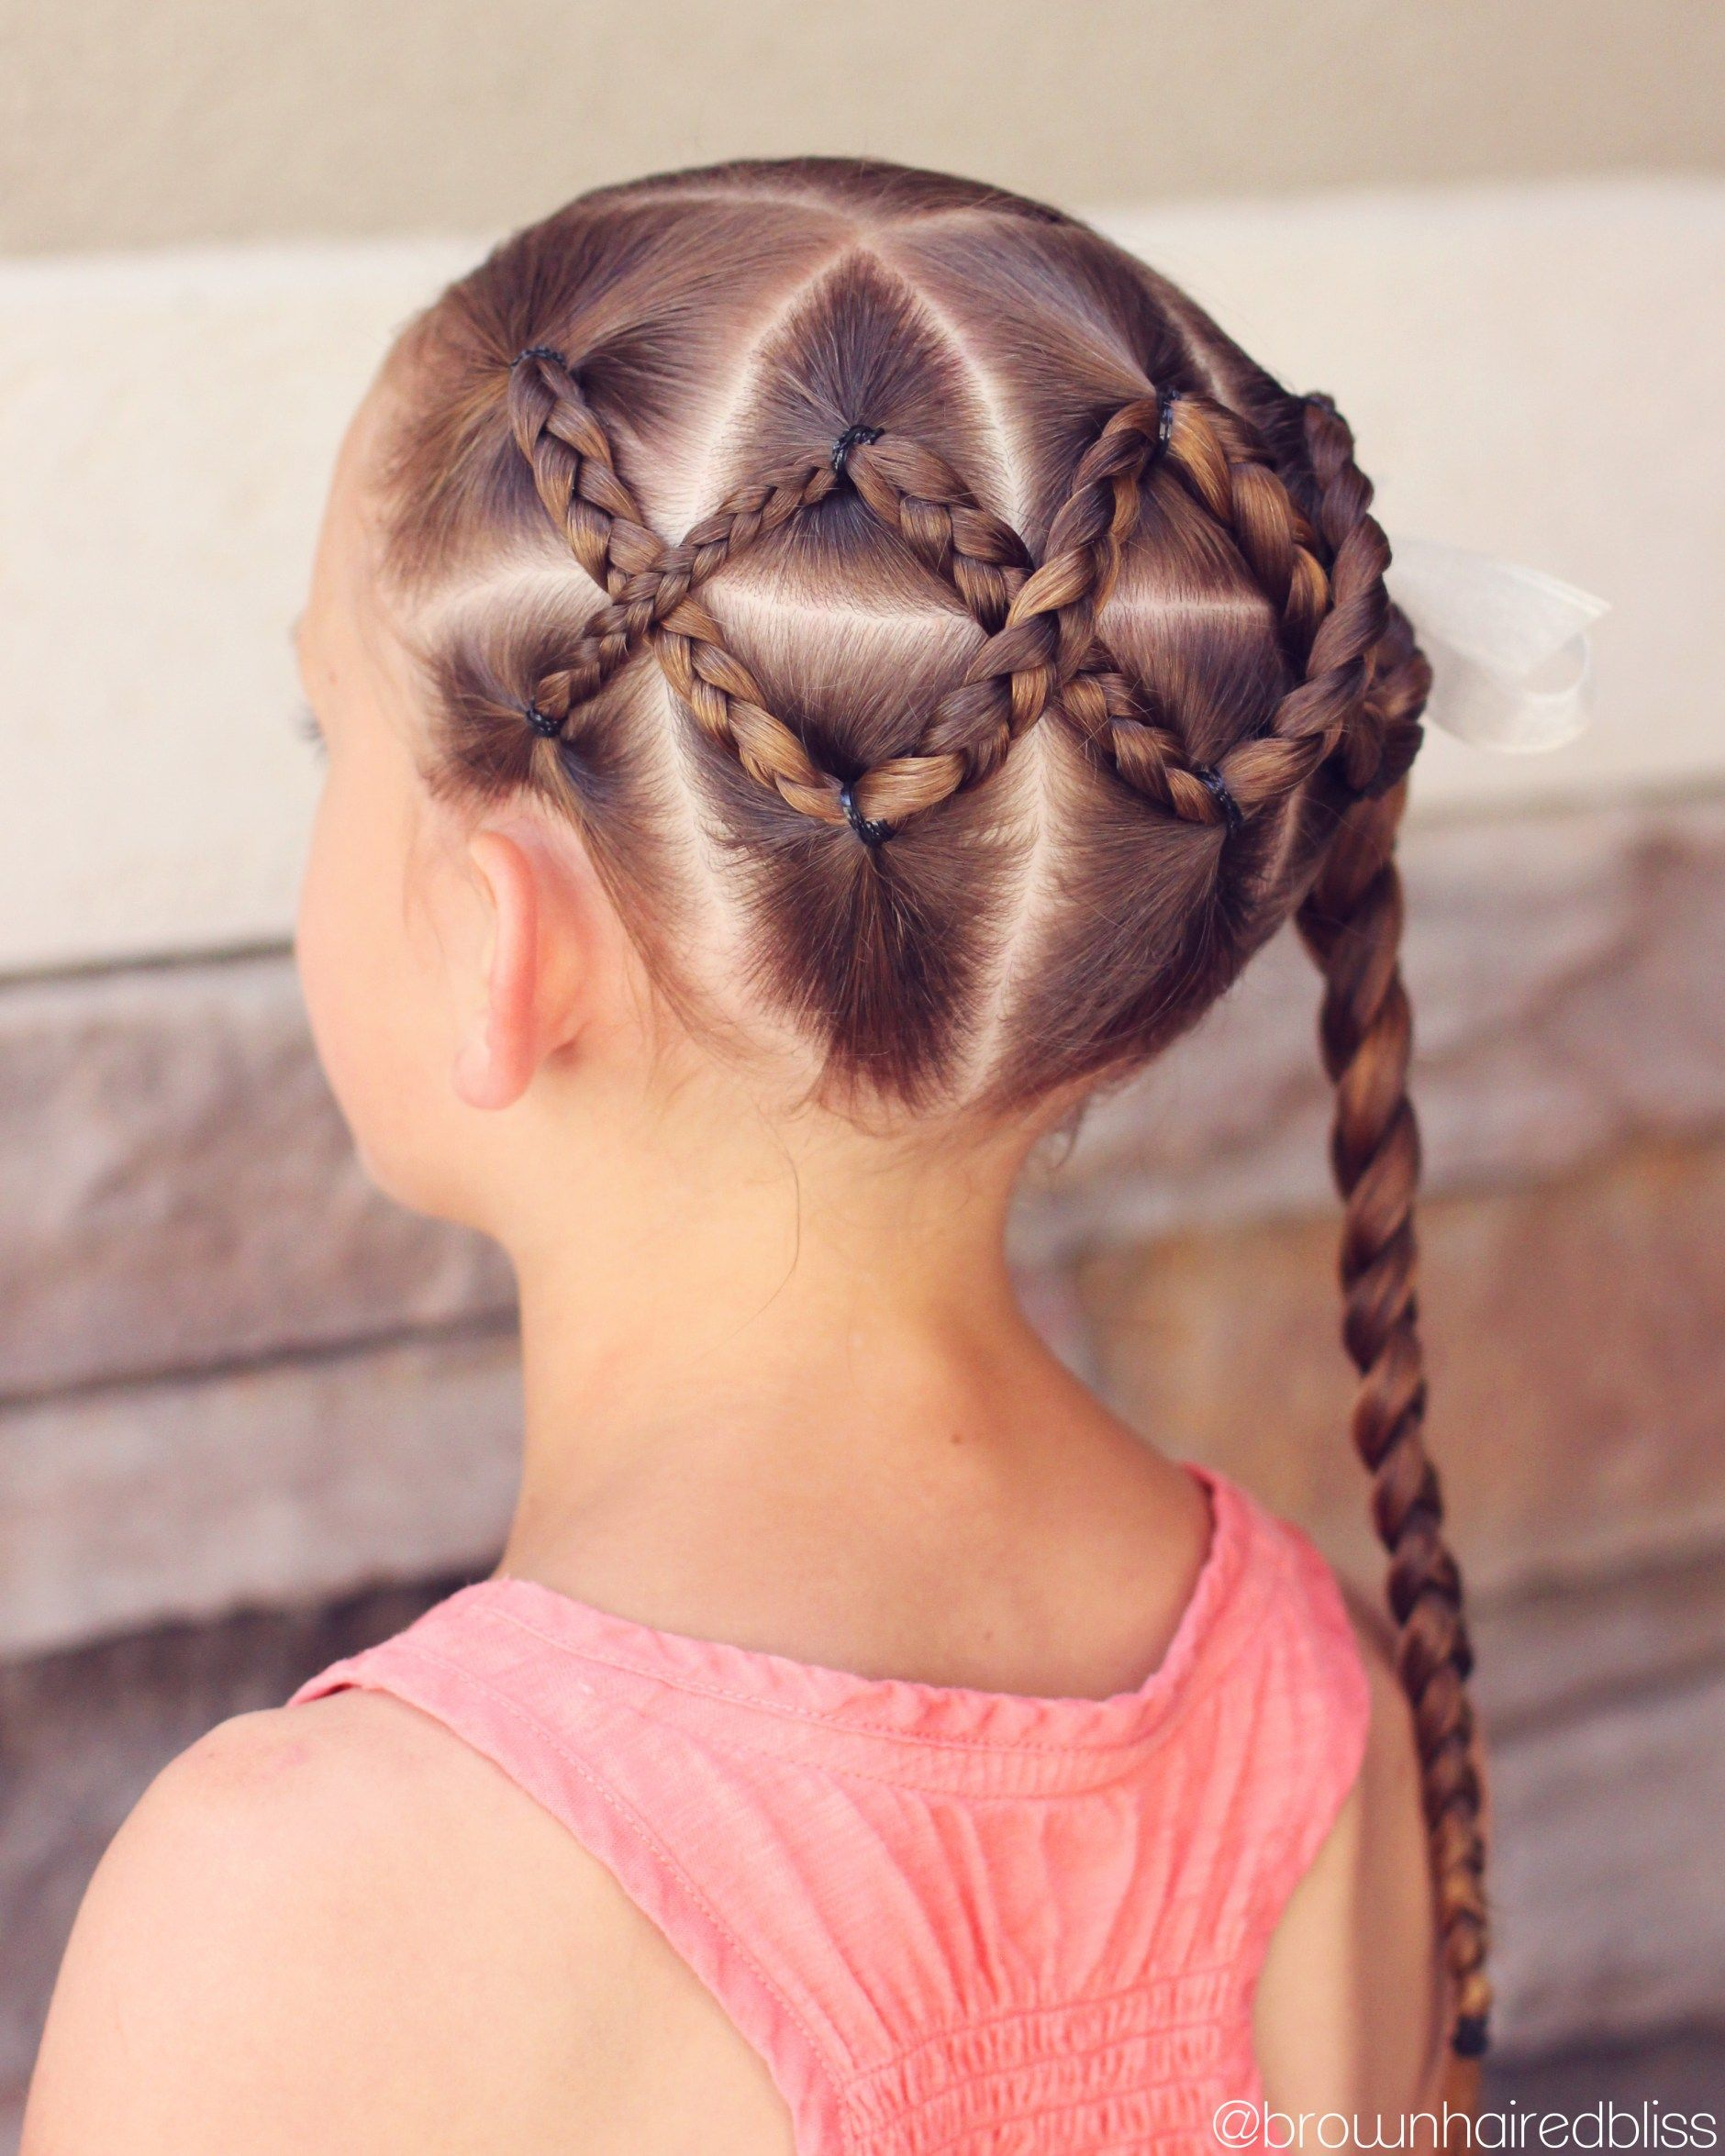 No title fab pinterest hair style girl hair and girl hairstyles